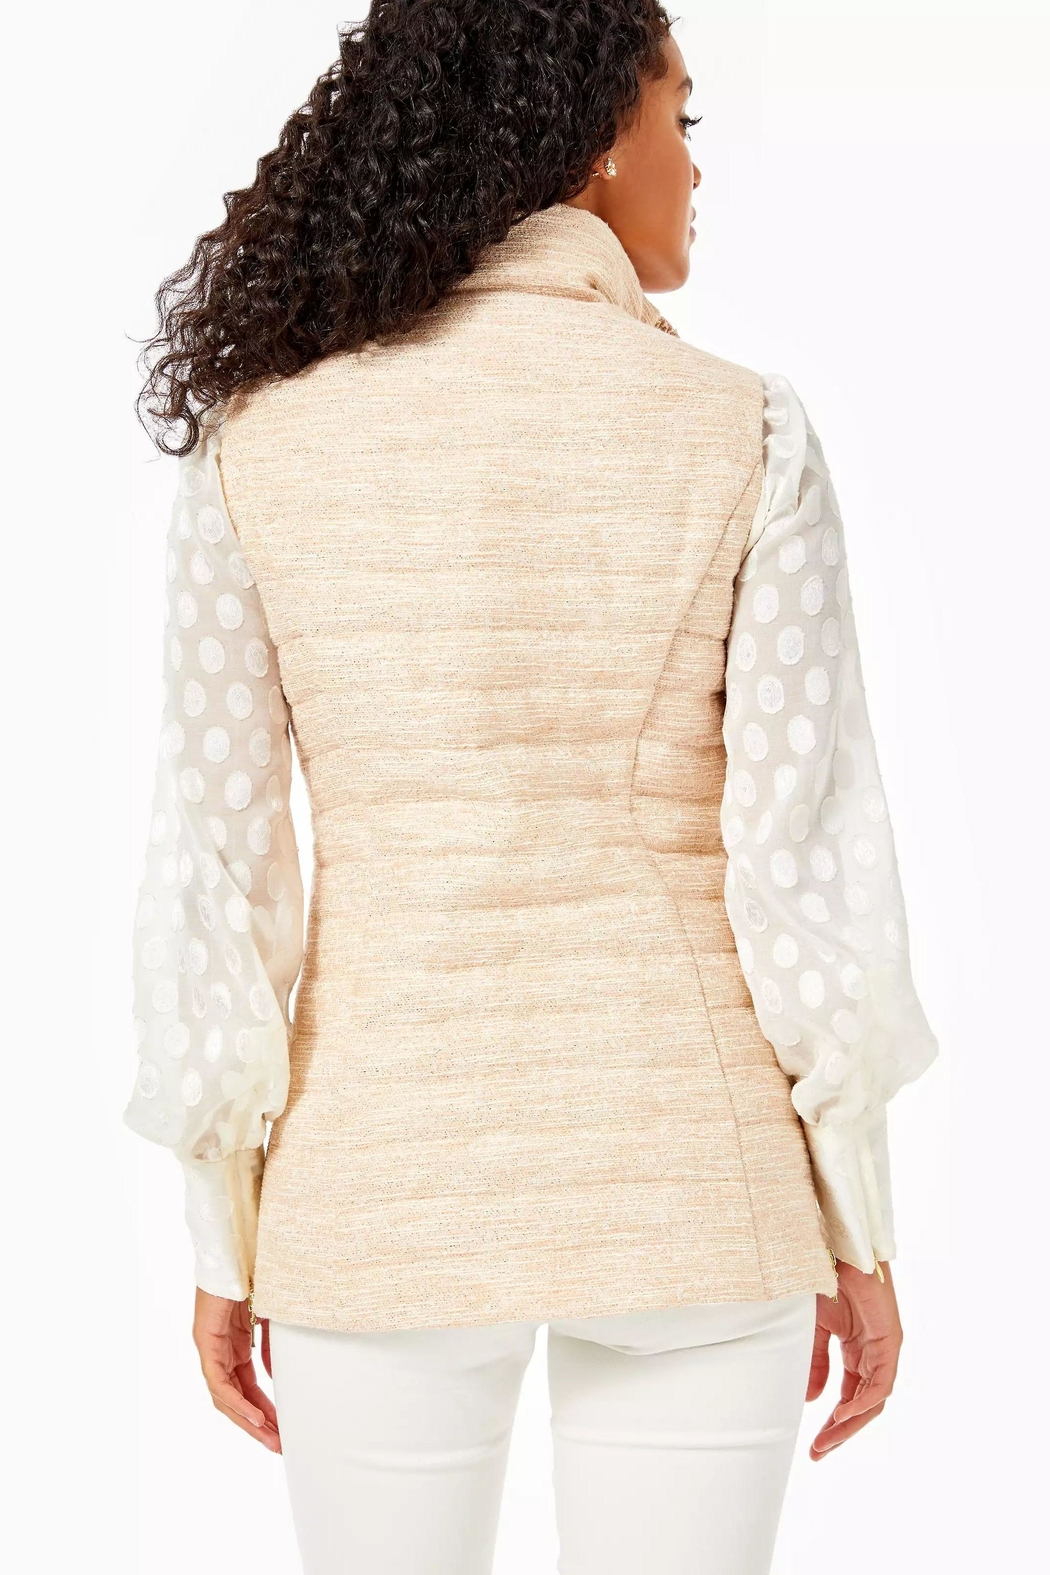 Lilly Pulitzer Noella Puffer Vest - Front Full Image